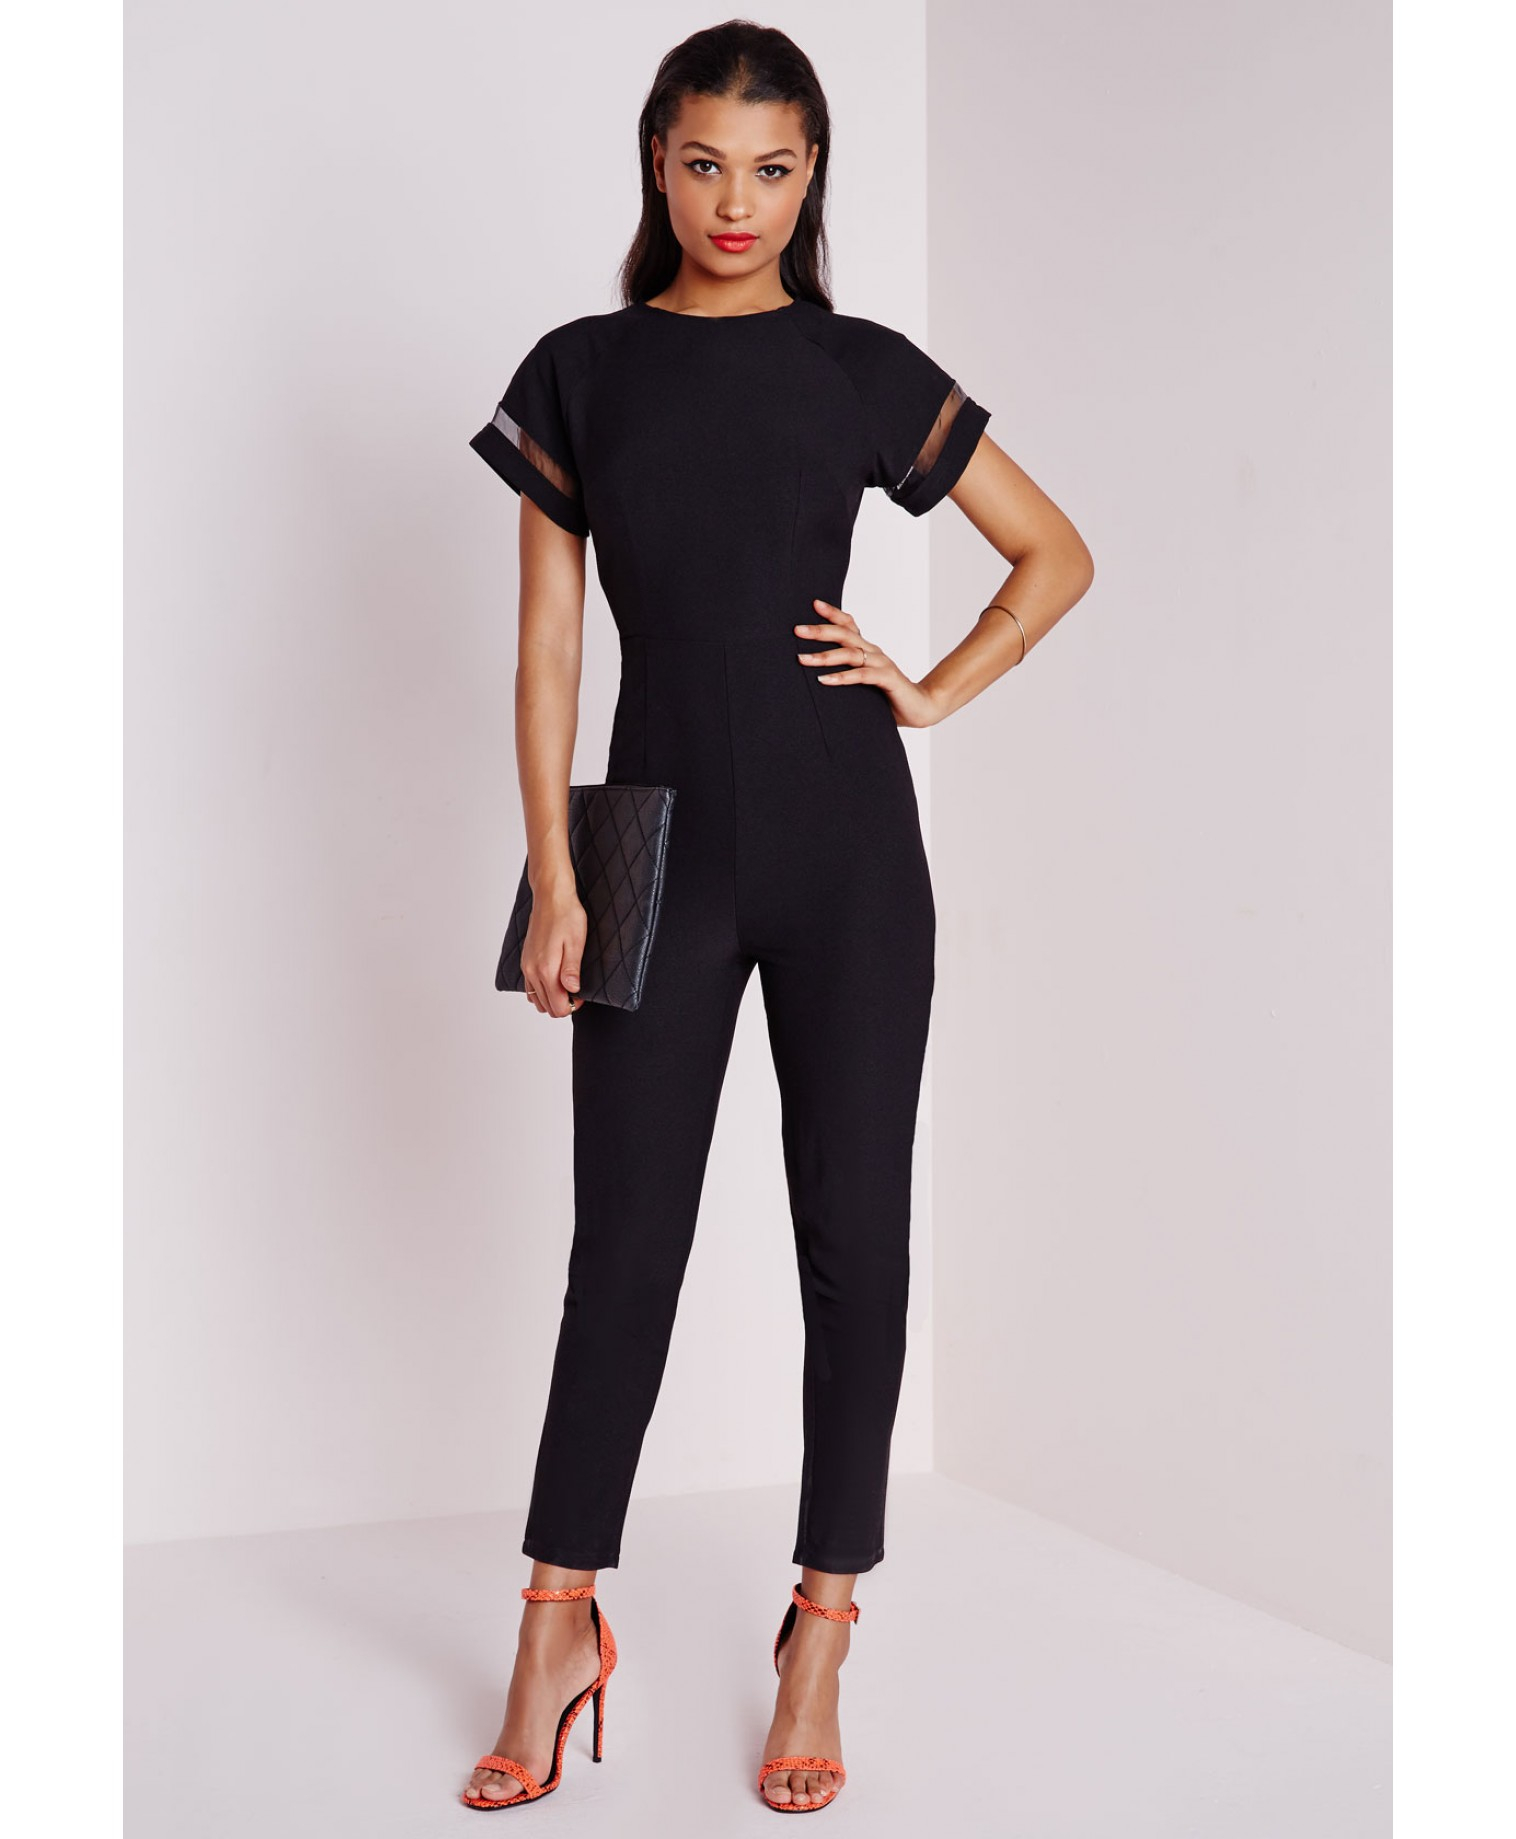 Playsuits and Jumpsuits We can't get enough of all-in-one playsuits and jumpsuits for new season styling. A cropped leg is key for the jumpsuit, with slouchier silhouettes calling for strappy details and a .